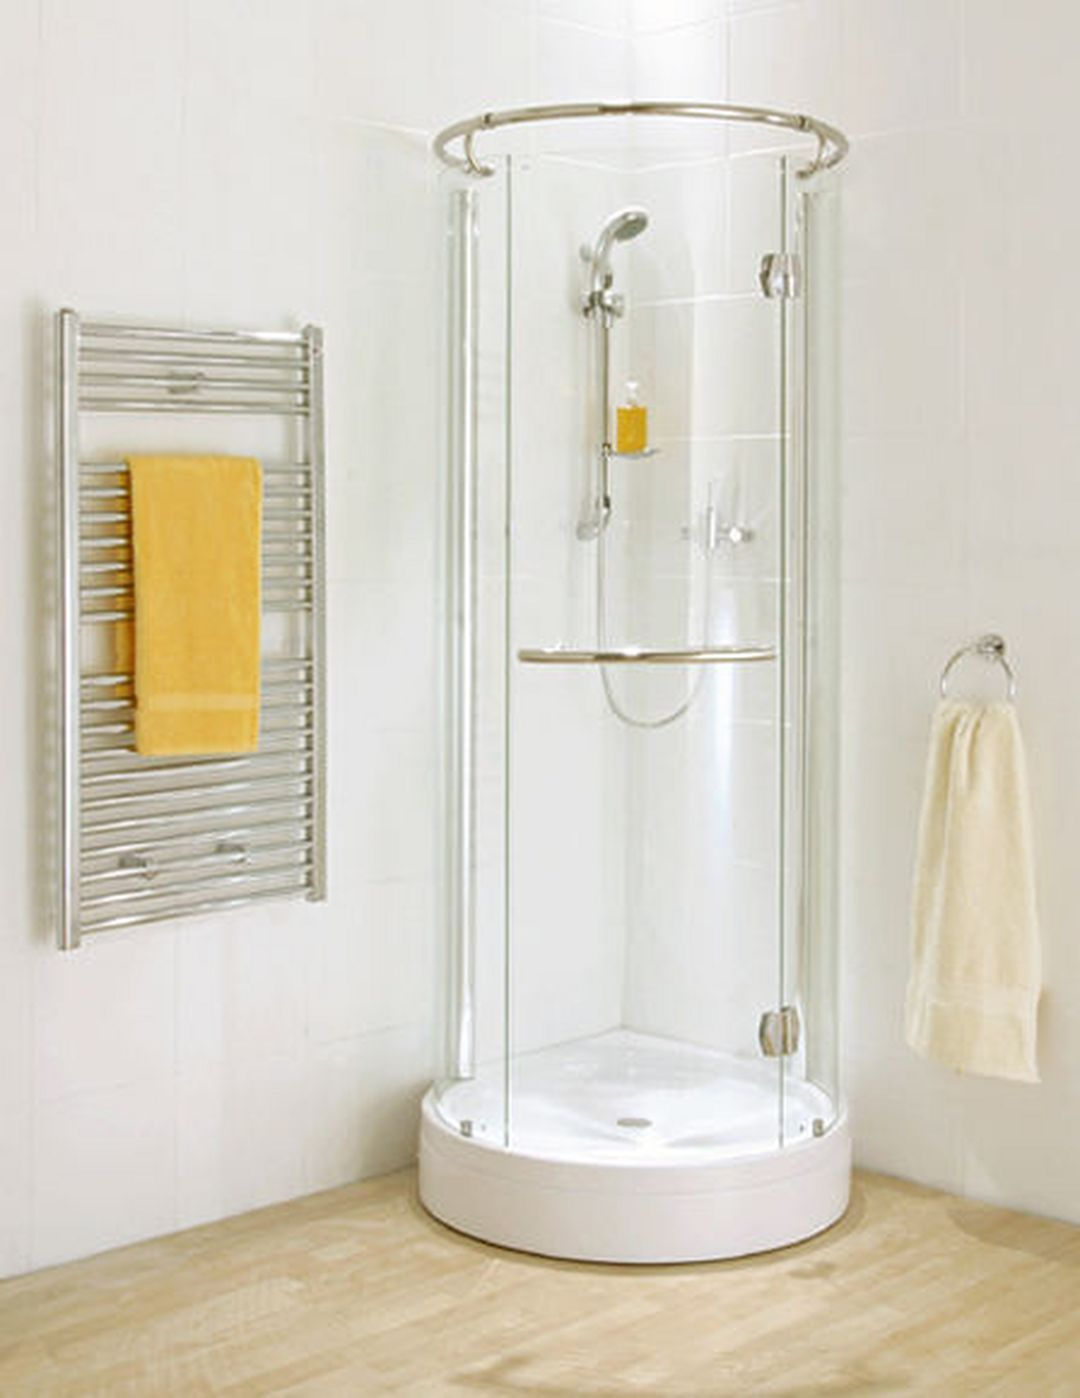 25 Best Shower Stalls For Small Bathroom On A Budget Di 2020 Kamar Mandi Inspirasi